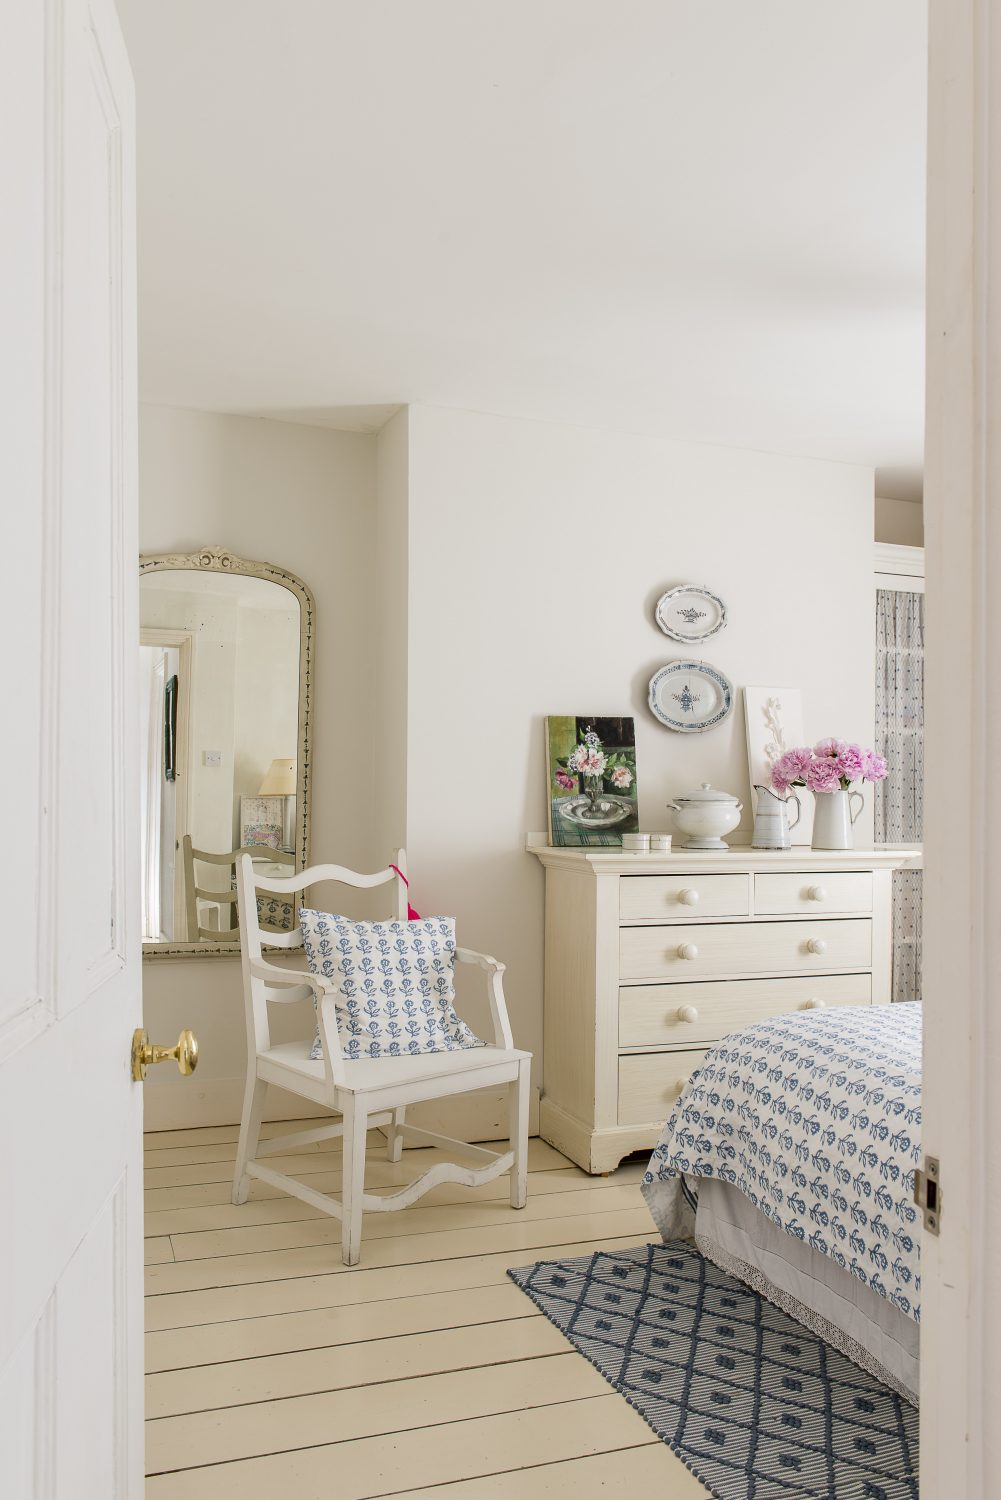 The bedroom is the perfect example of the sense of nurturing calm created by Sasha's sophisticated simplicity